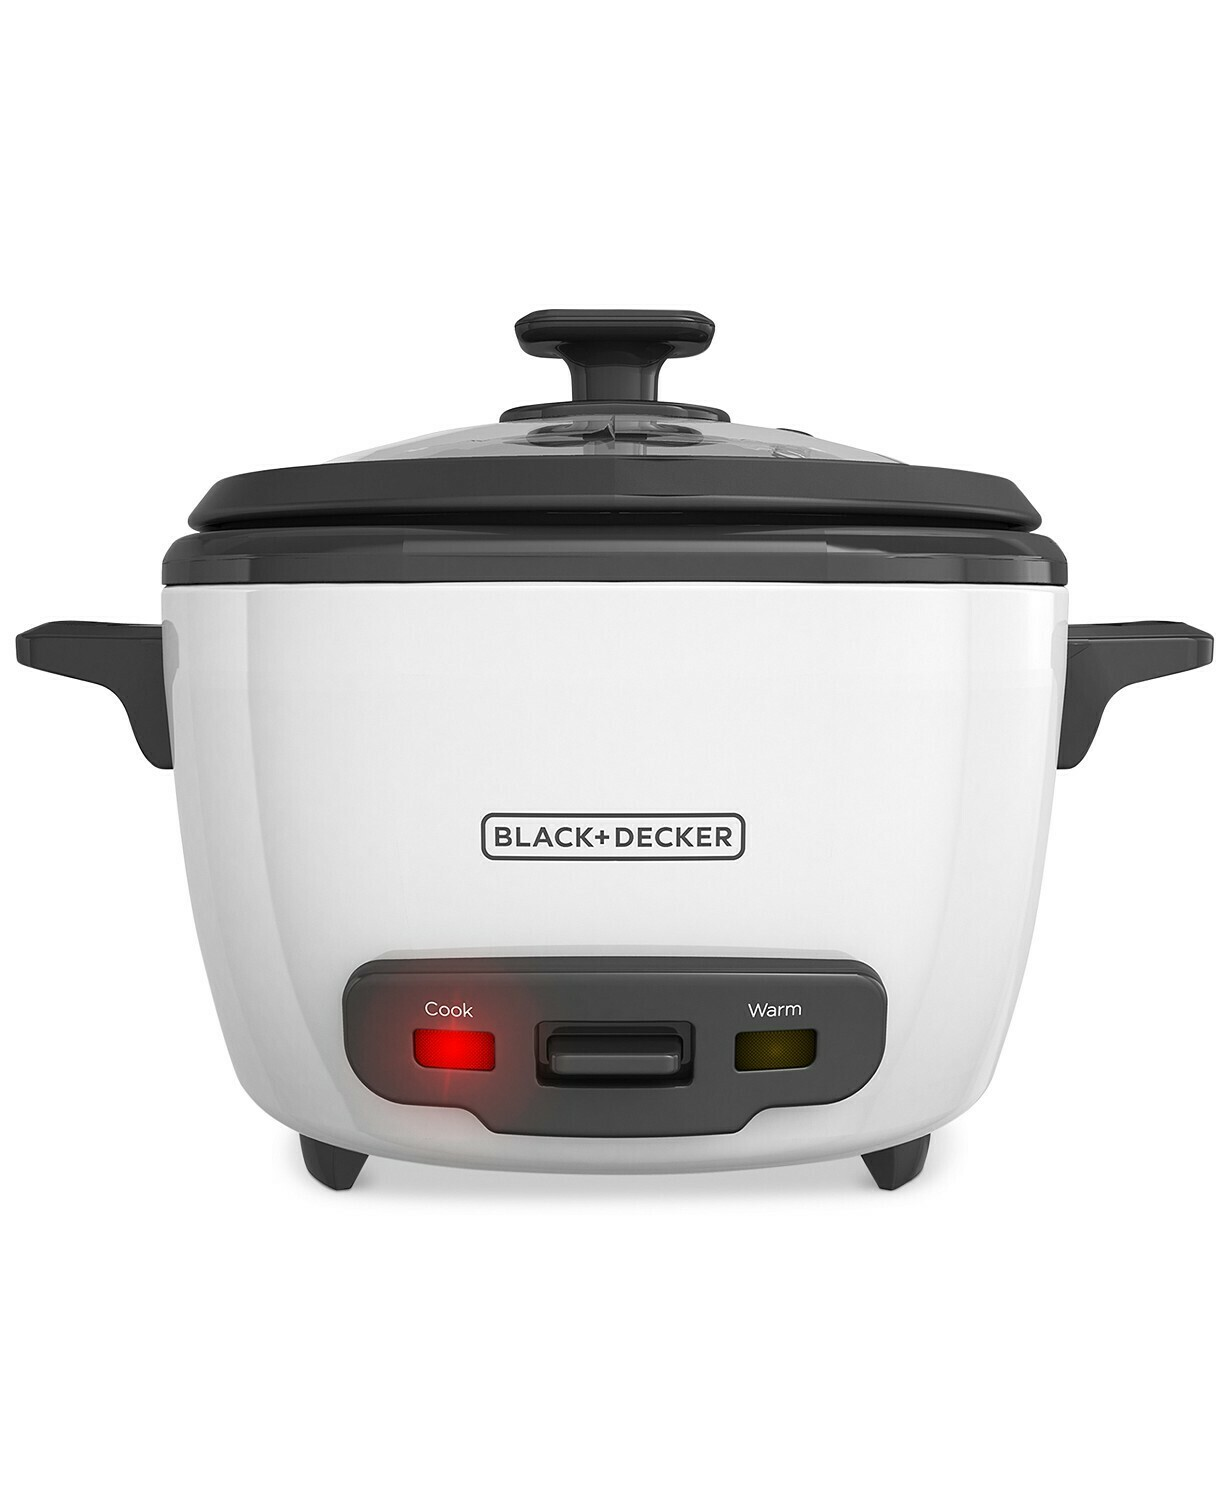 CE-335 Black and Decker 16 Cup Rice Cooker  - Model# RC516 - CARIBE